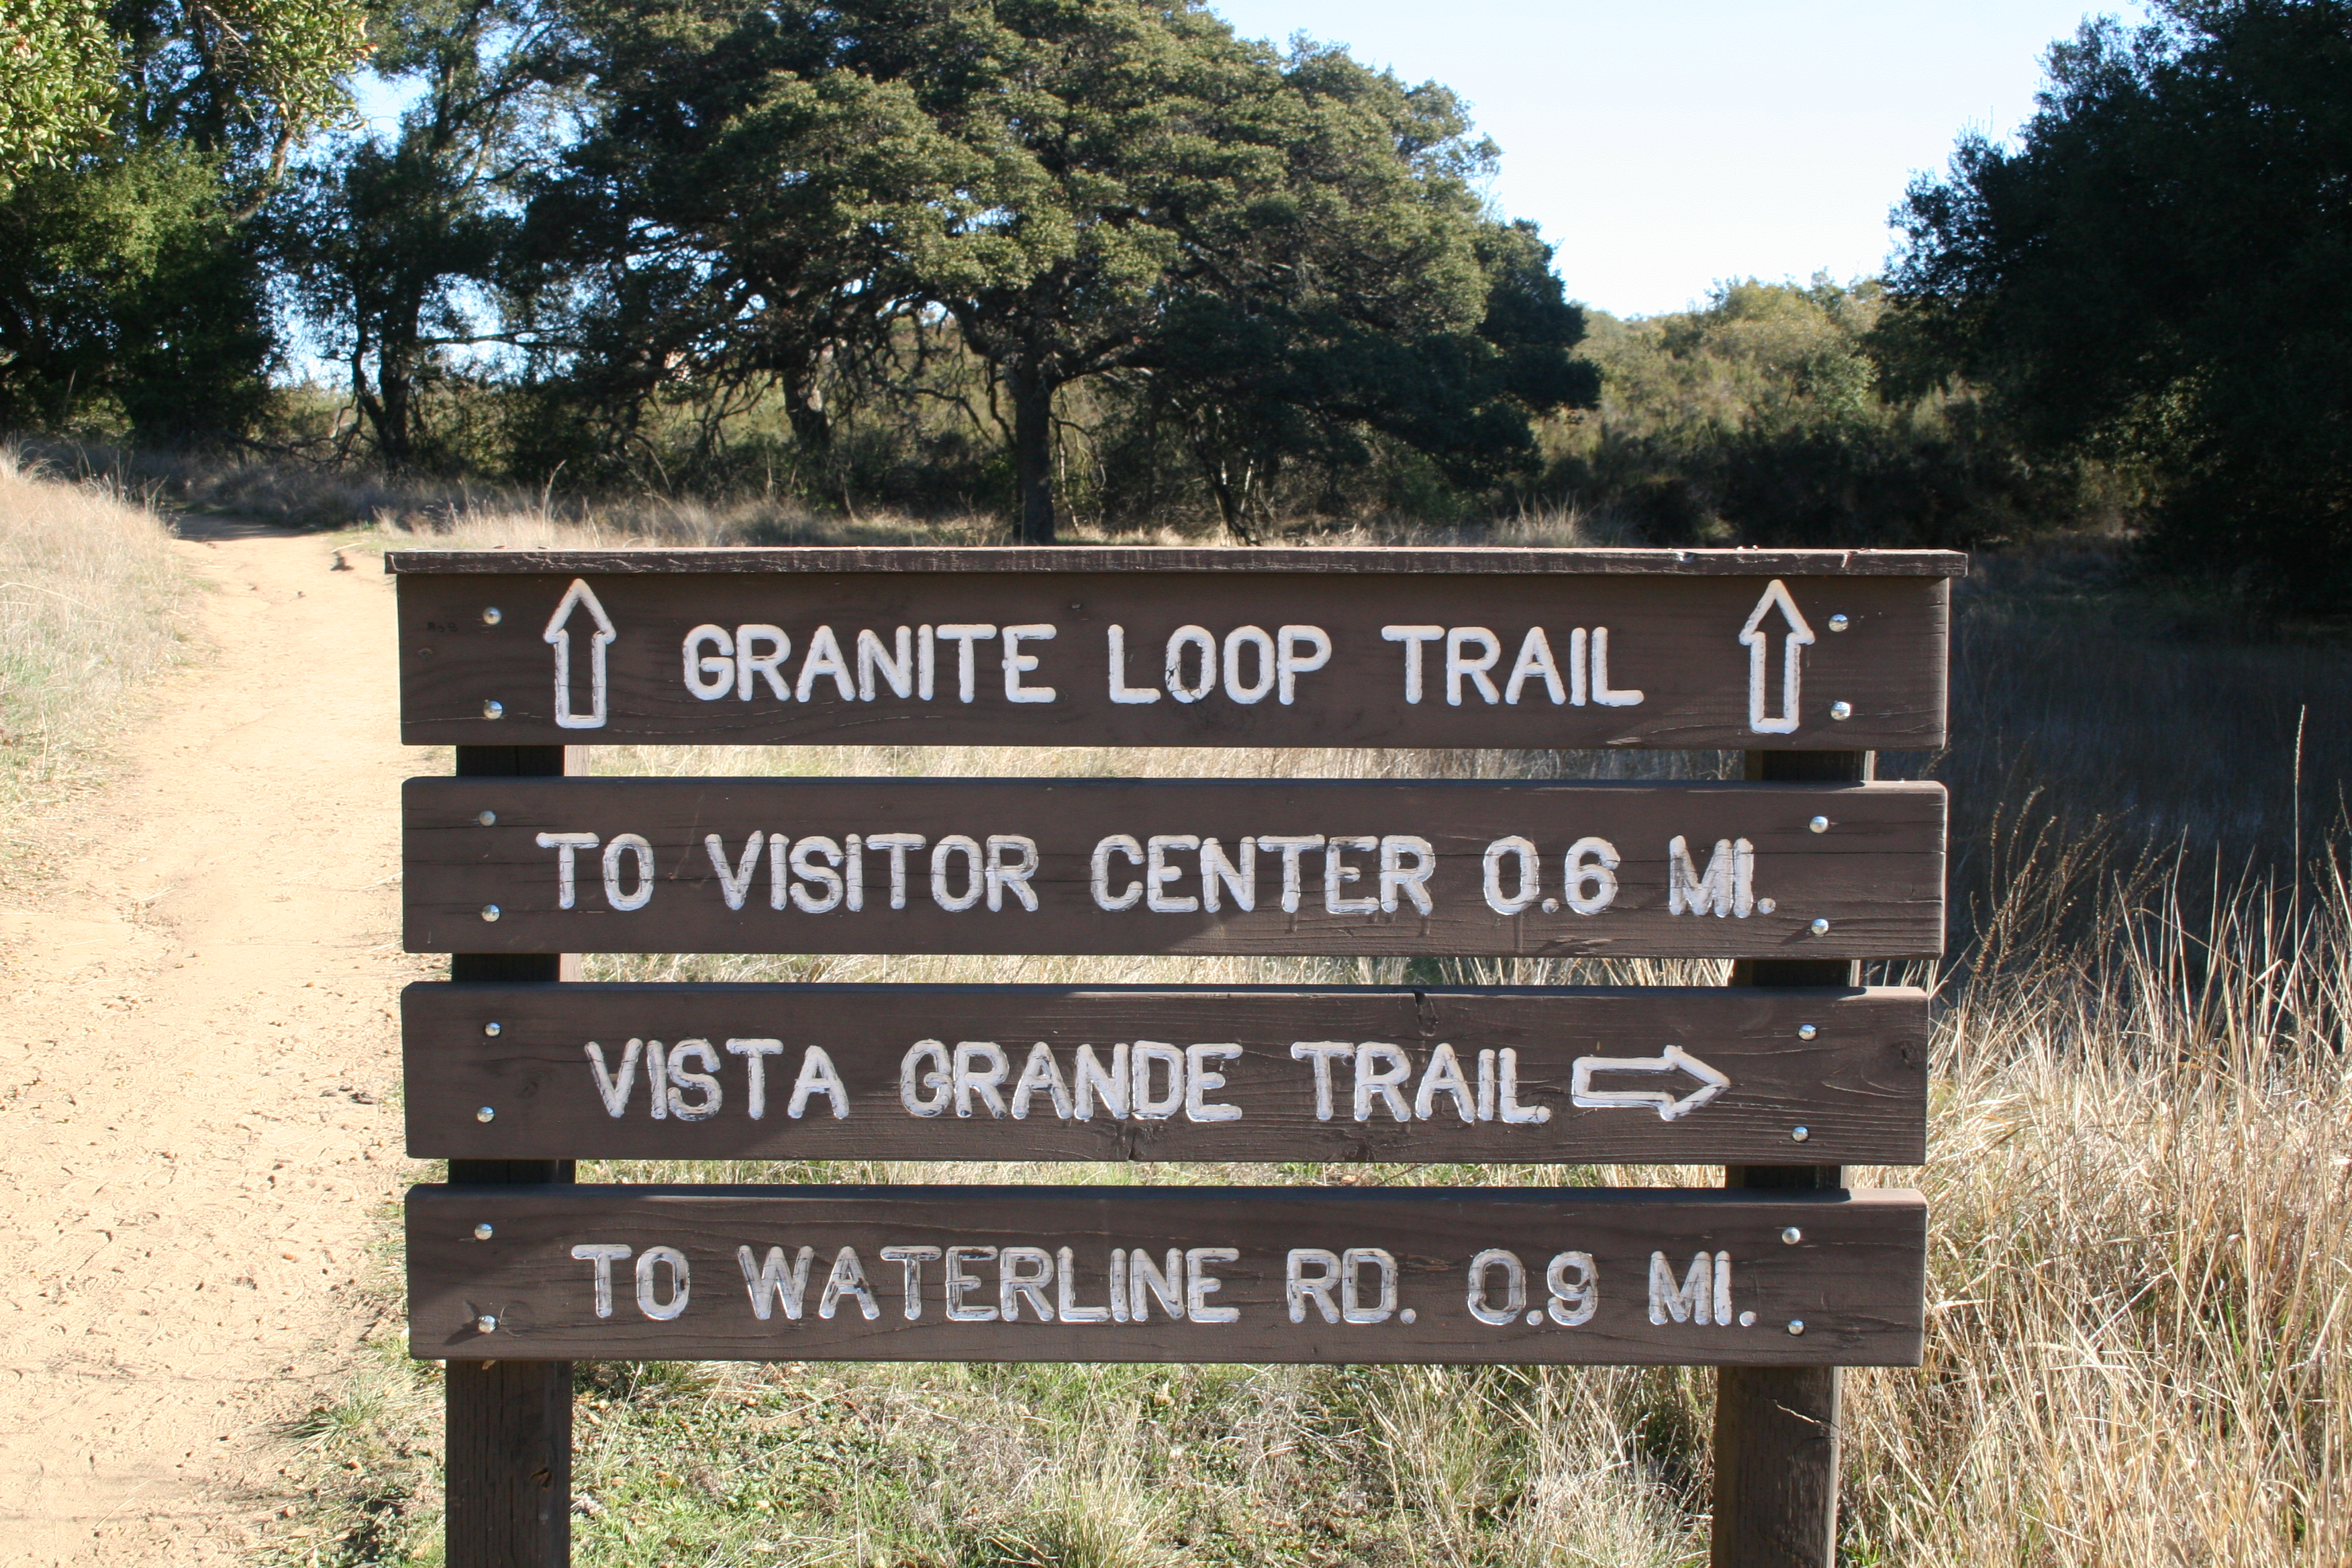 Trail signs on the reserve